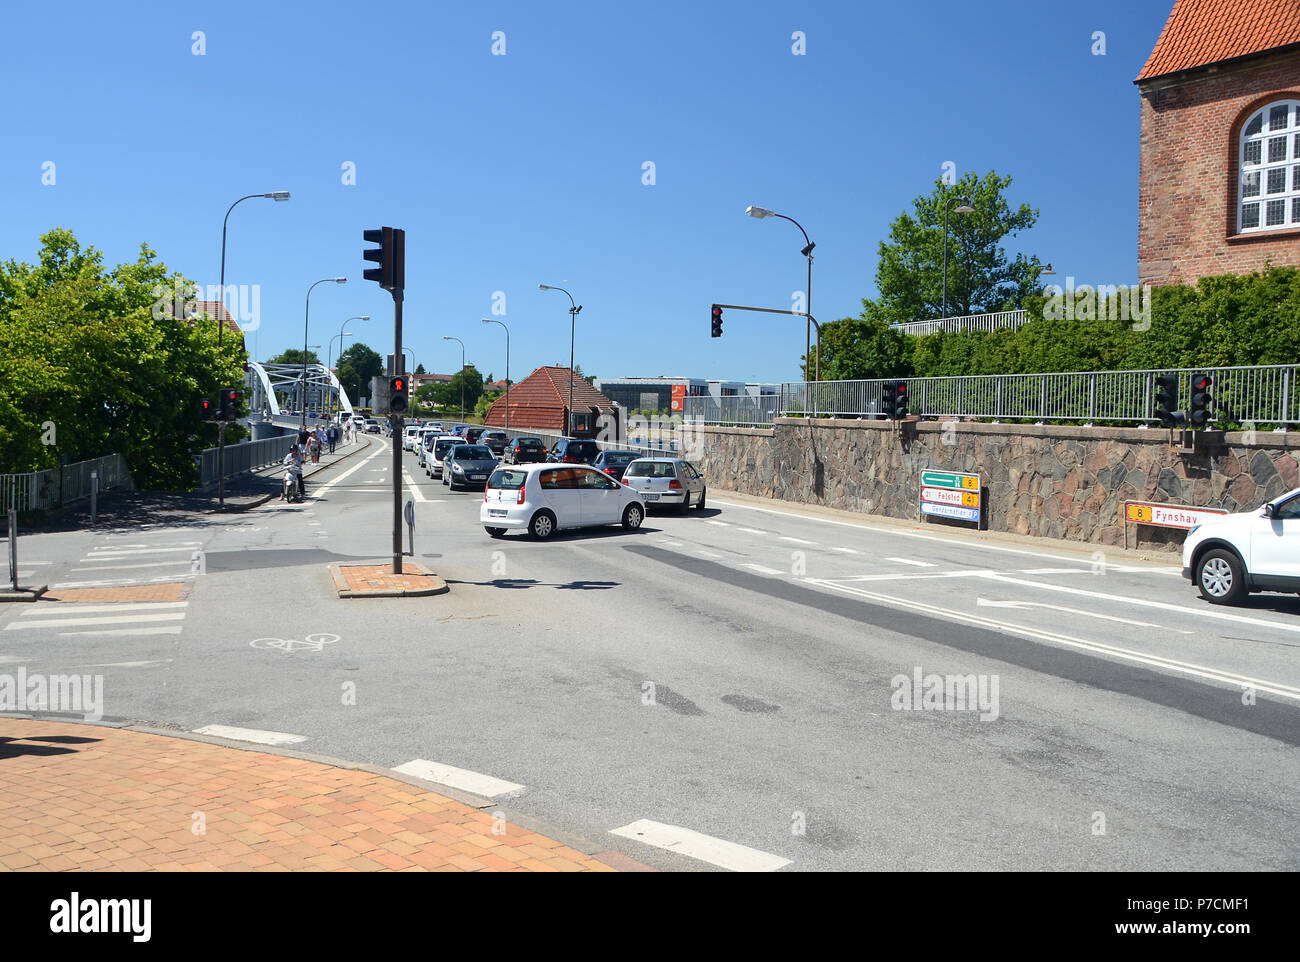 Sonderborg, Denmark - June 29, 2018: Car drivers that have entered an occupied intersection have caused a gridlock. - Stock Image